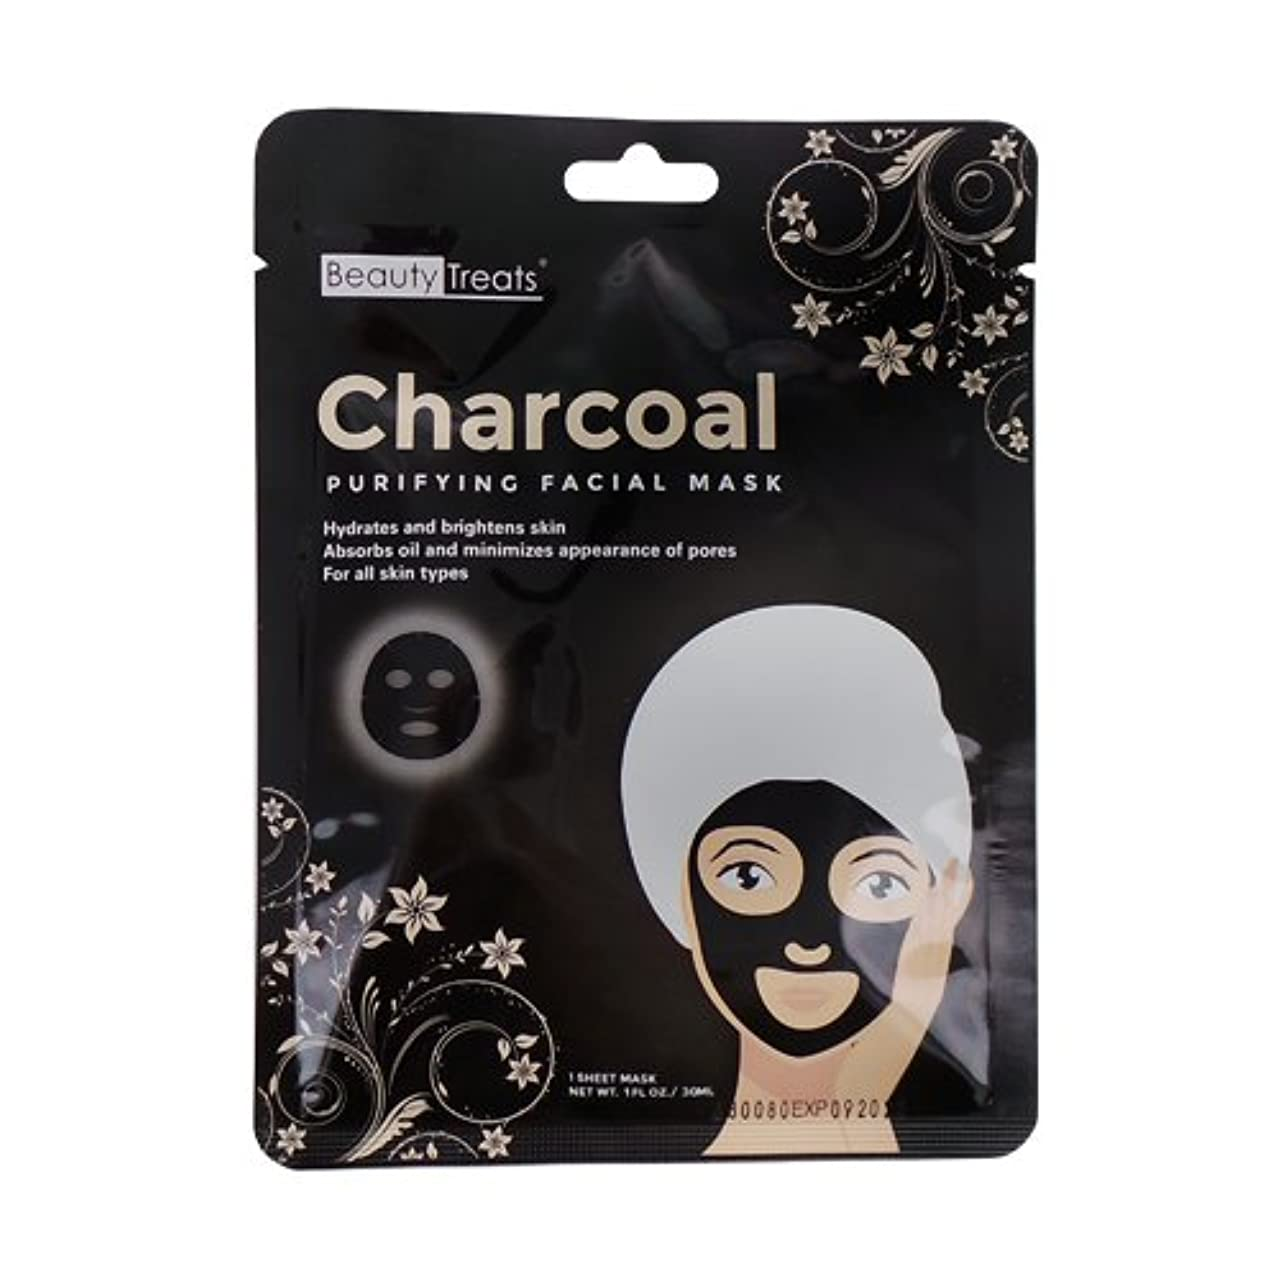 中国インチ頑丈(3 Pack) BEAUTY TREATS Charcoal Purifying Facial Mask (並行輸入品)